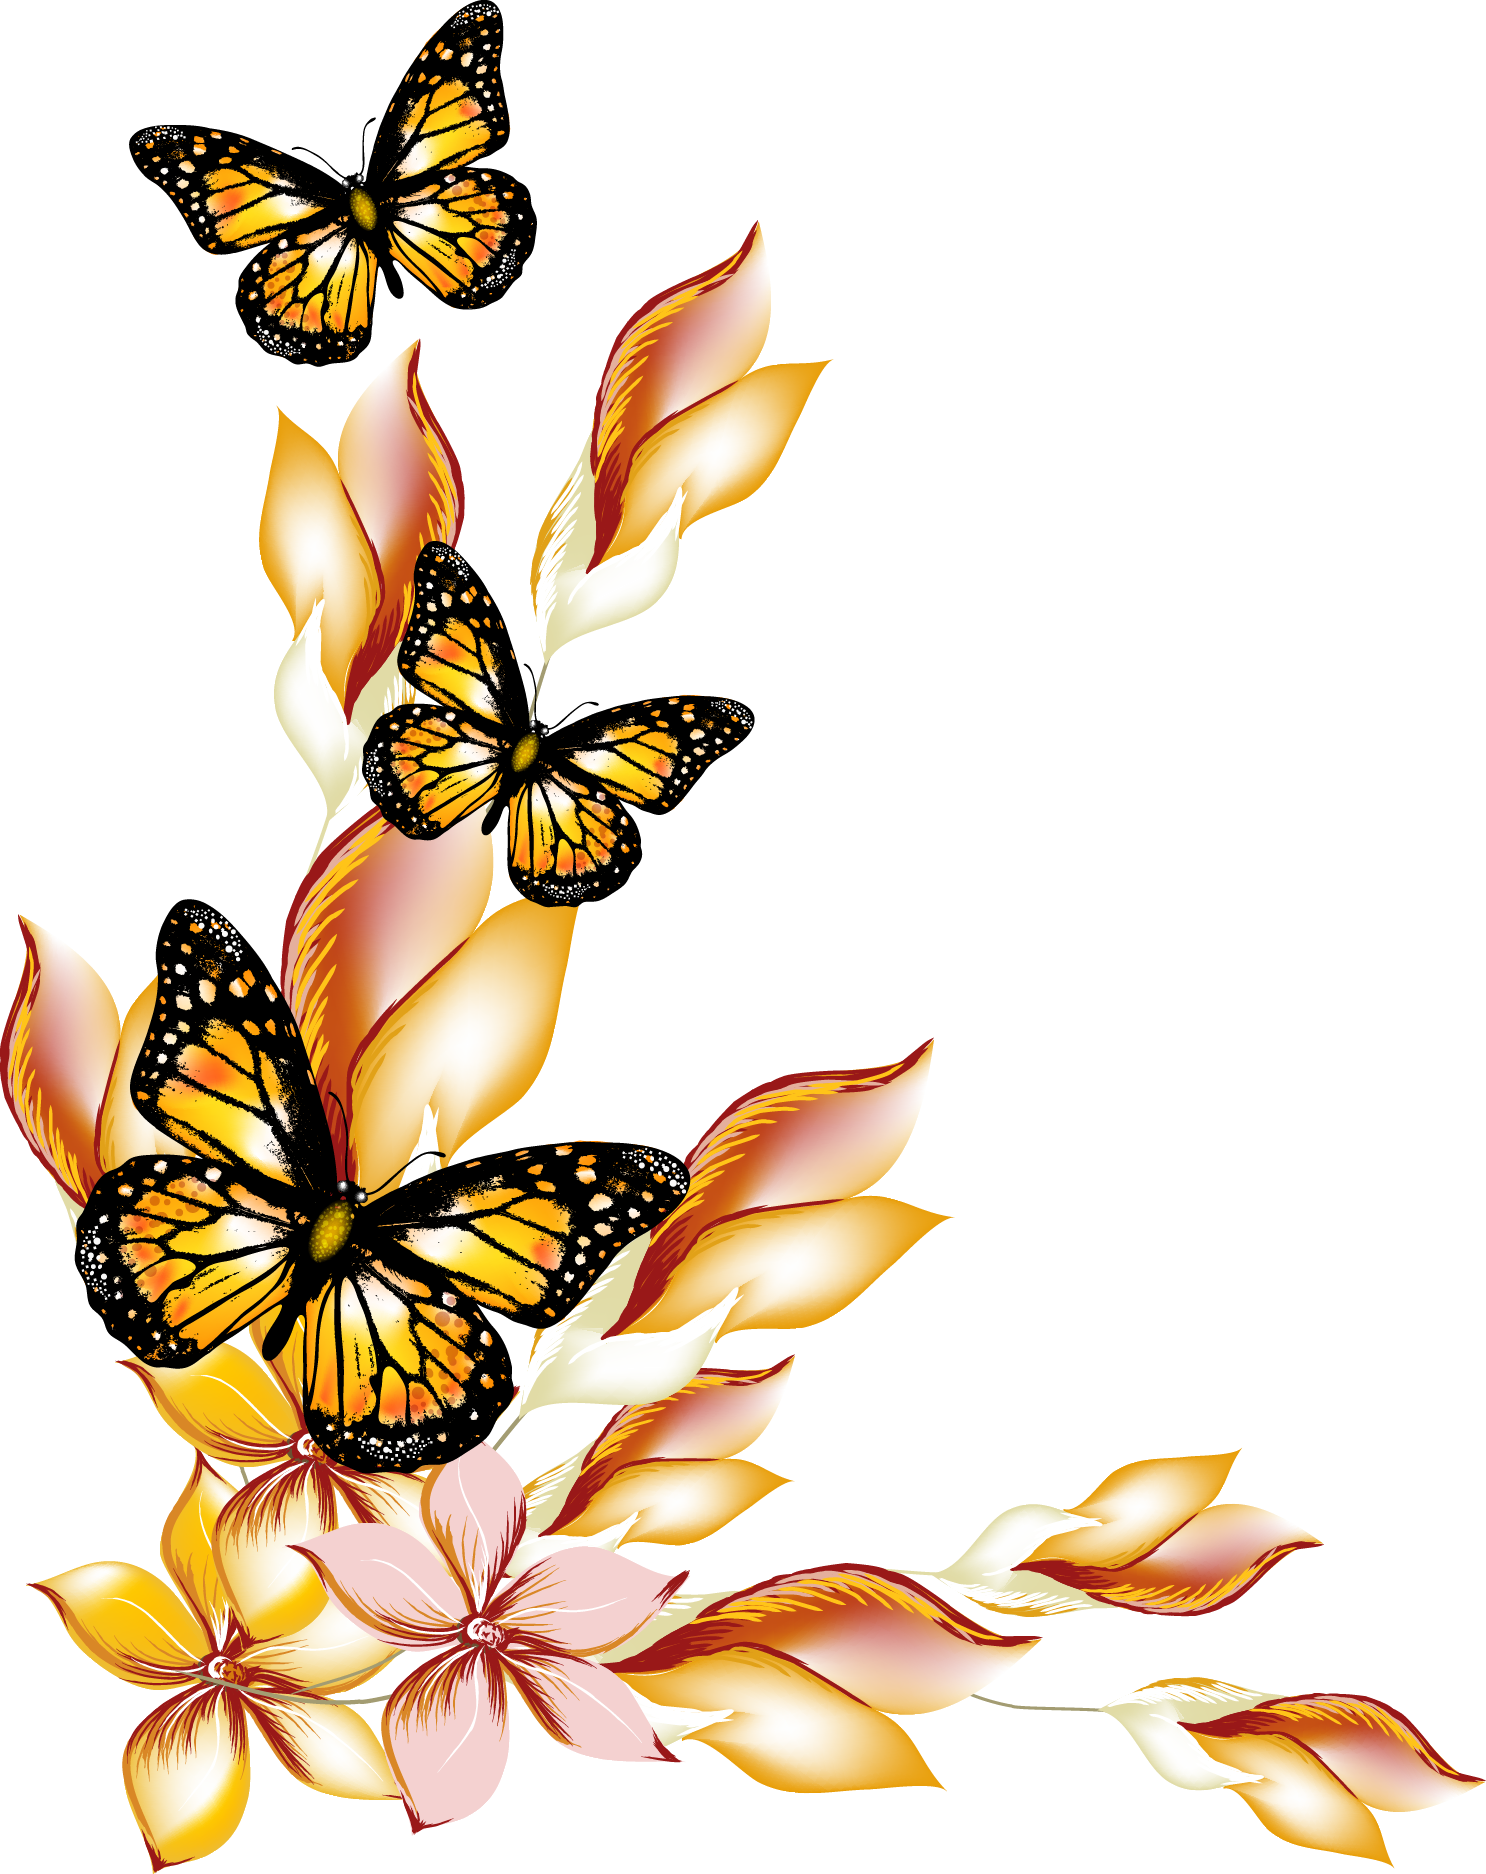 Butterfly And Flower Butterflies Vector Borders Flowers PNG Image